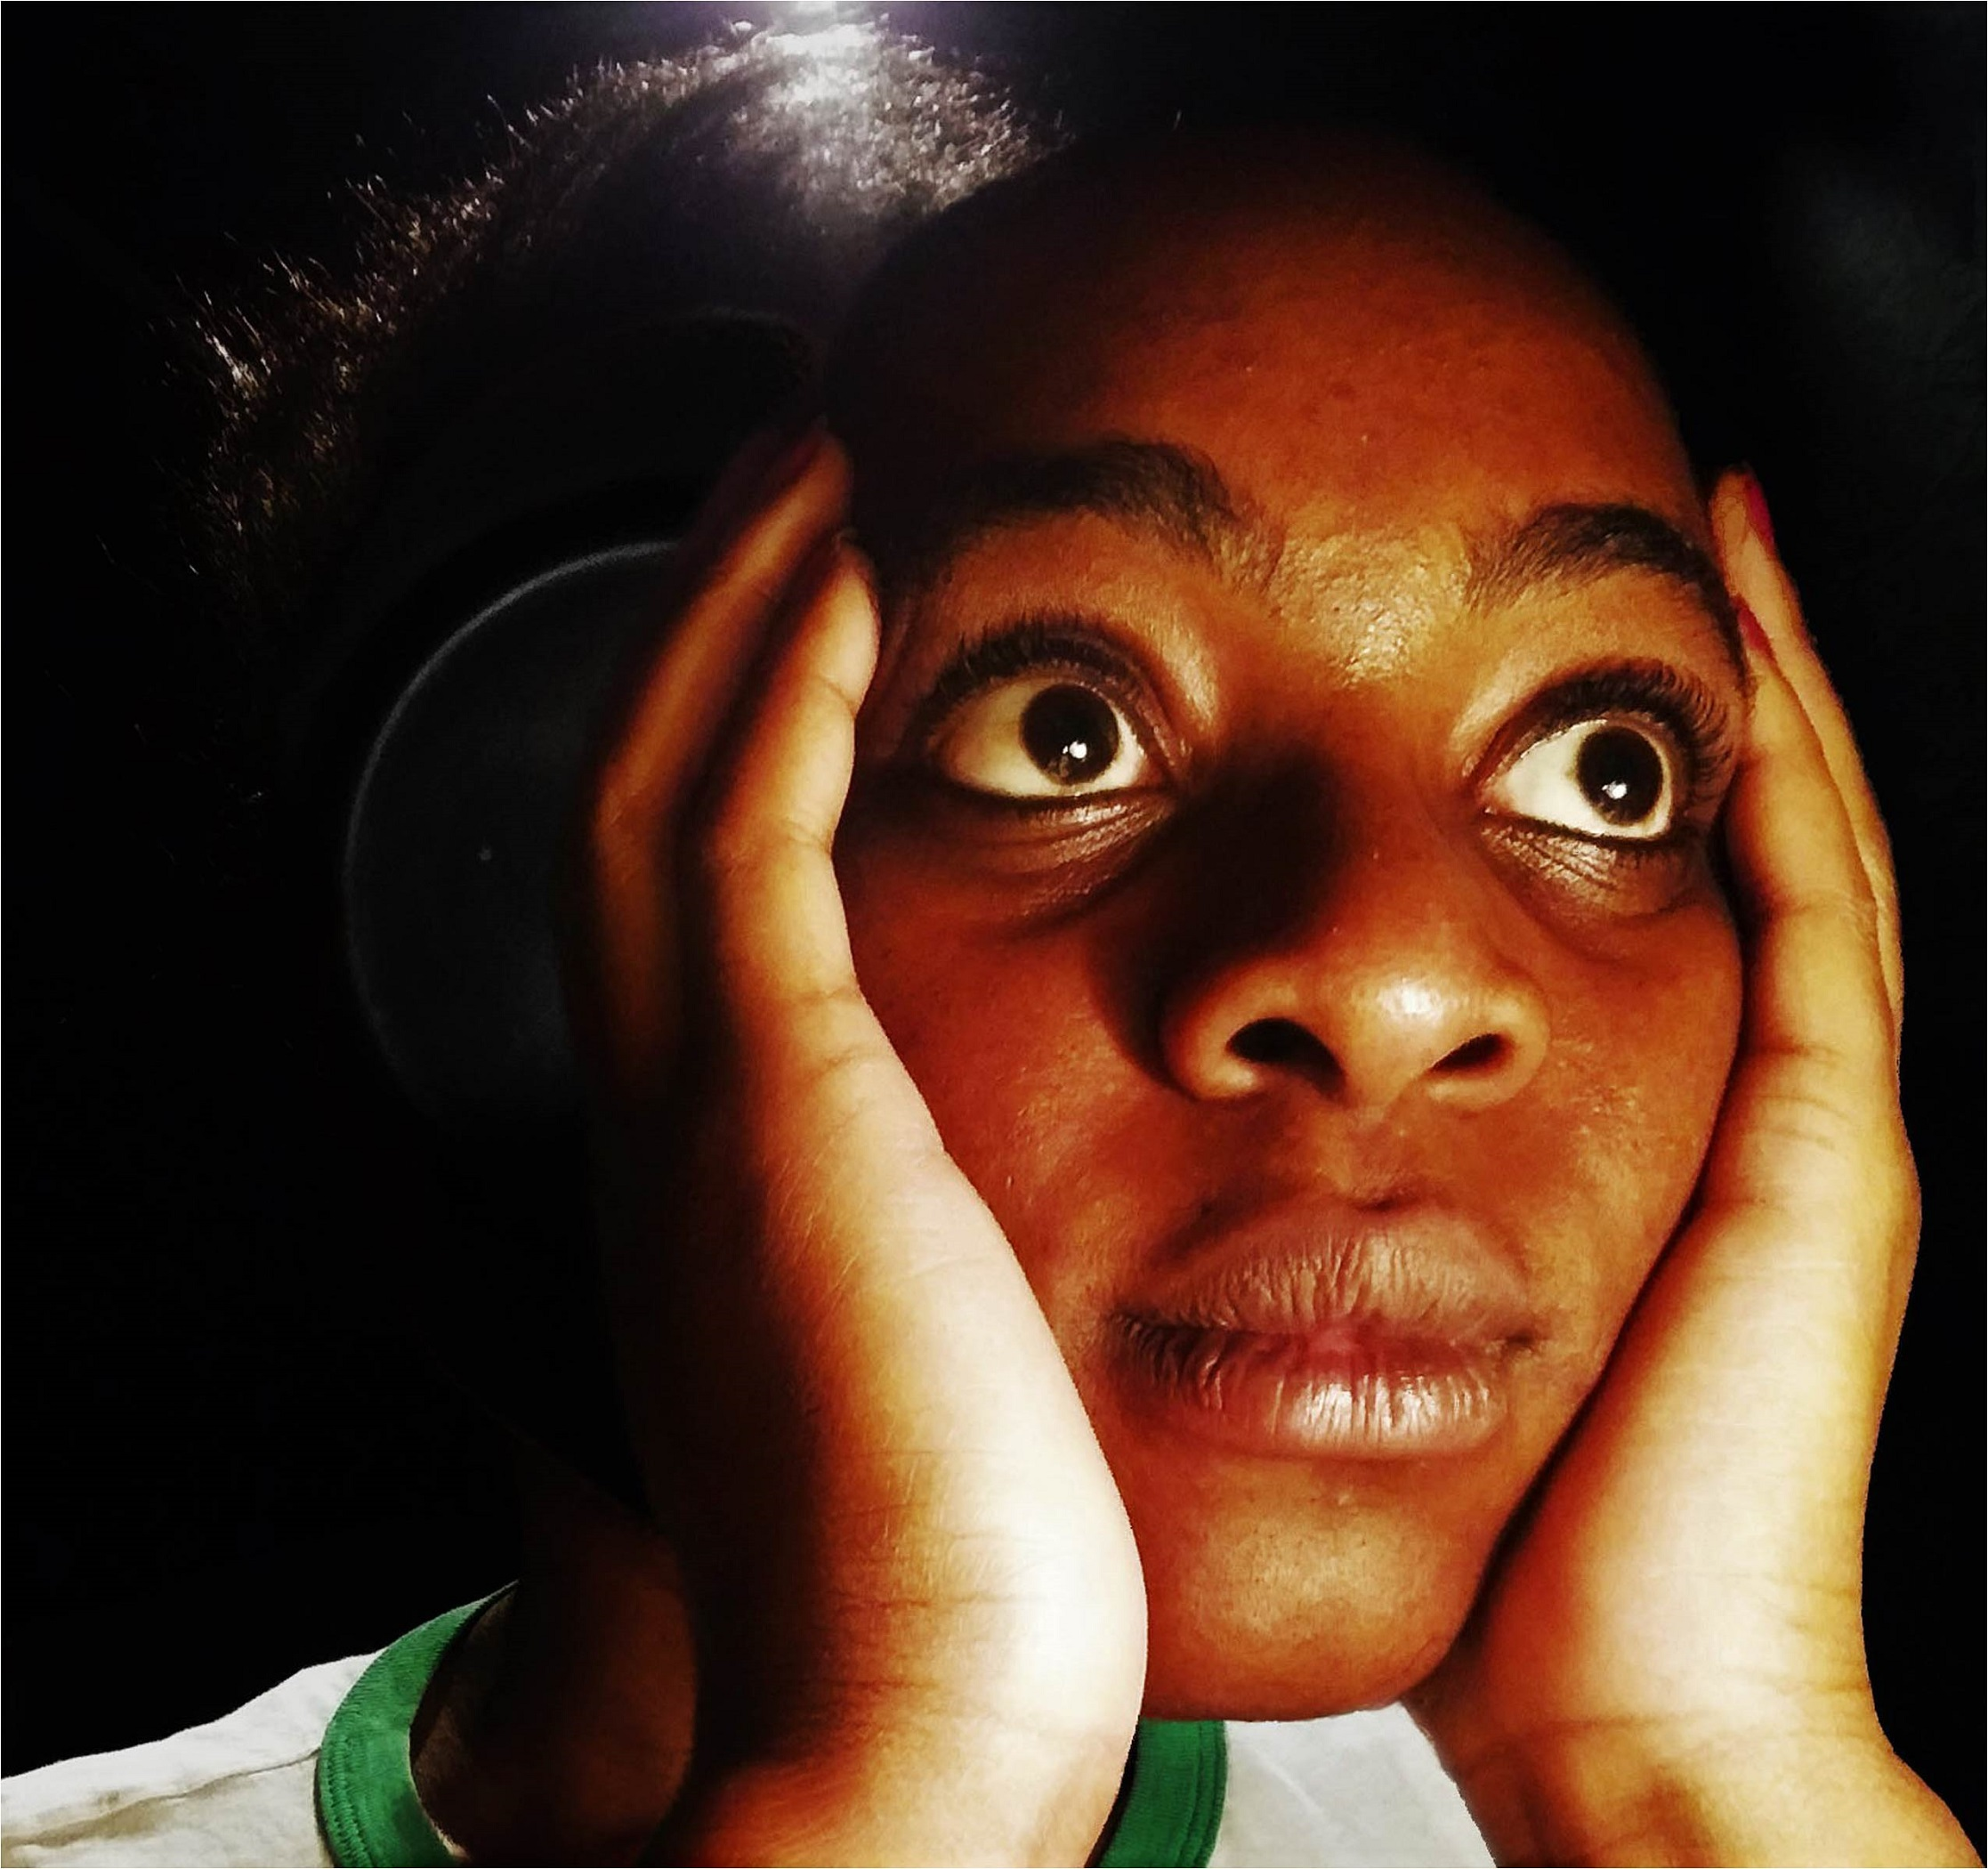 Black woman with hands on her face looking into distance